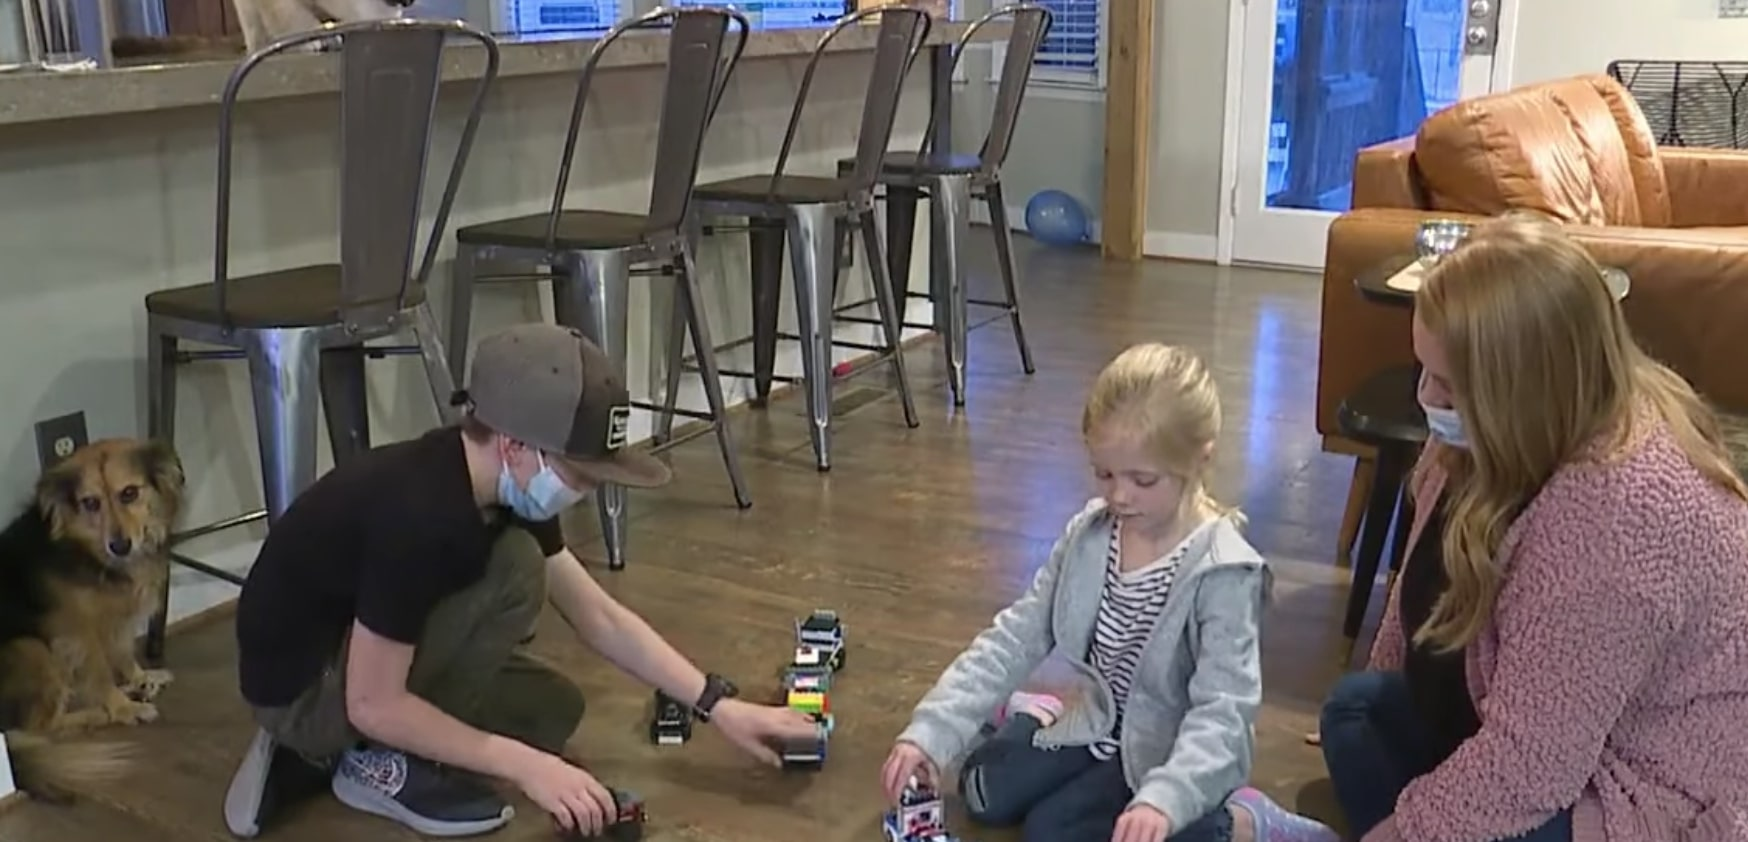 brave 9-year-old rescues kid sister from carjacking